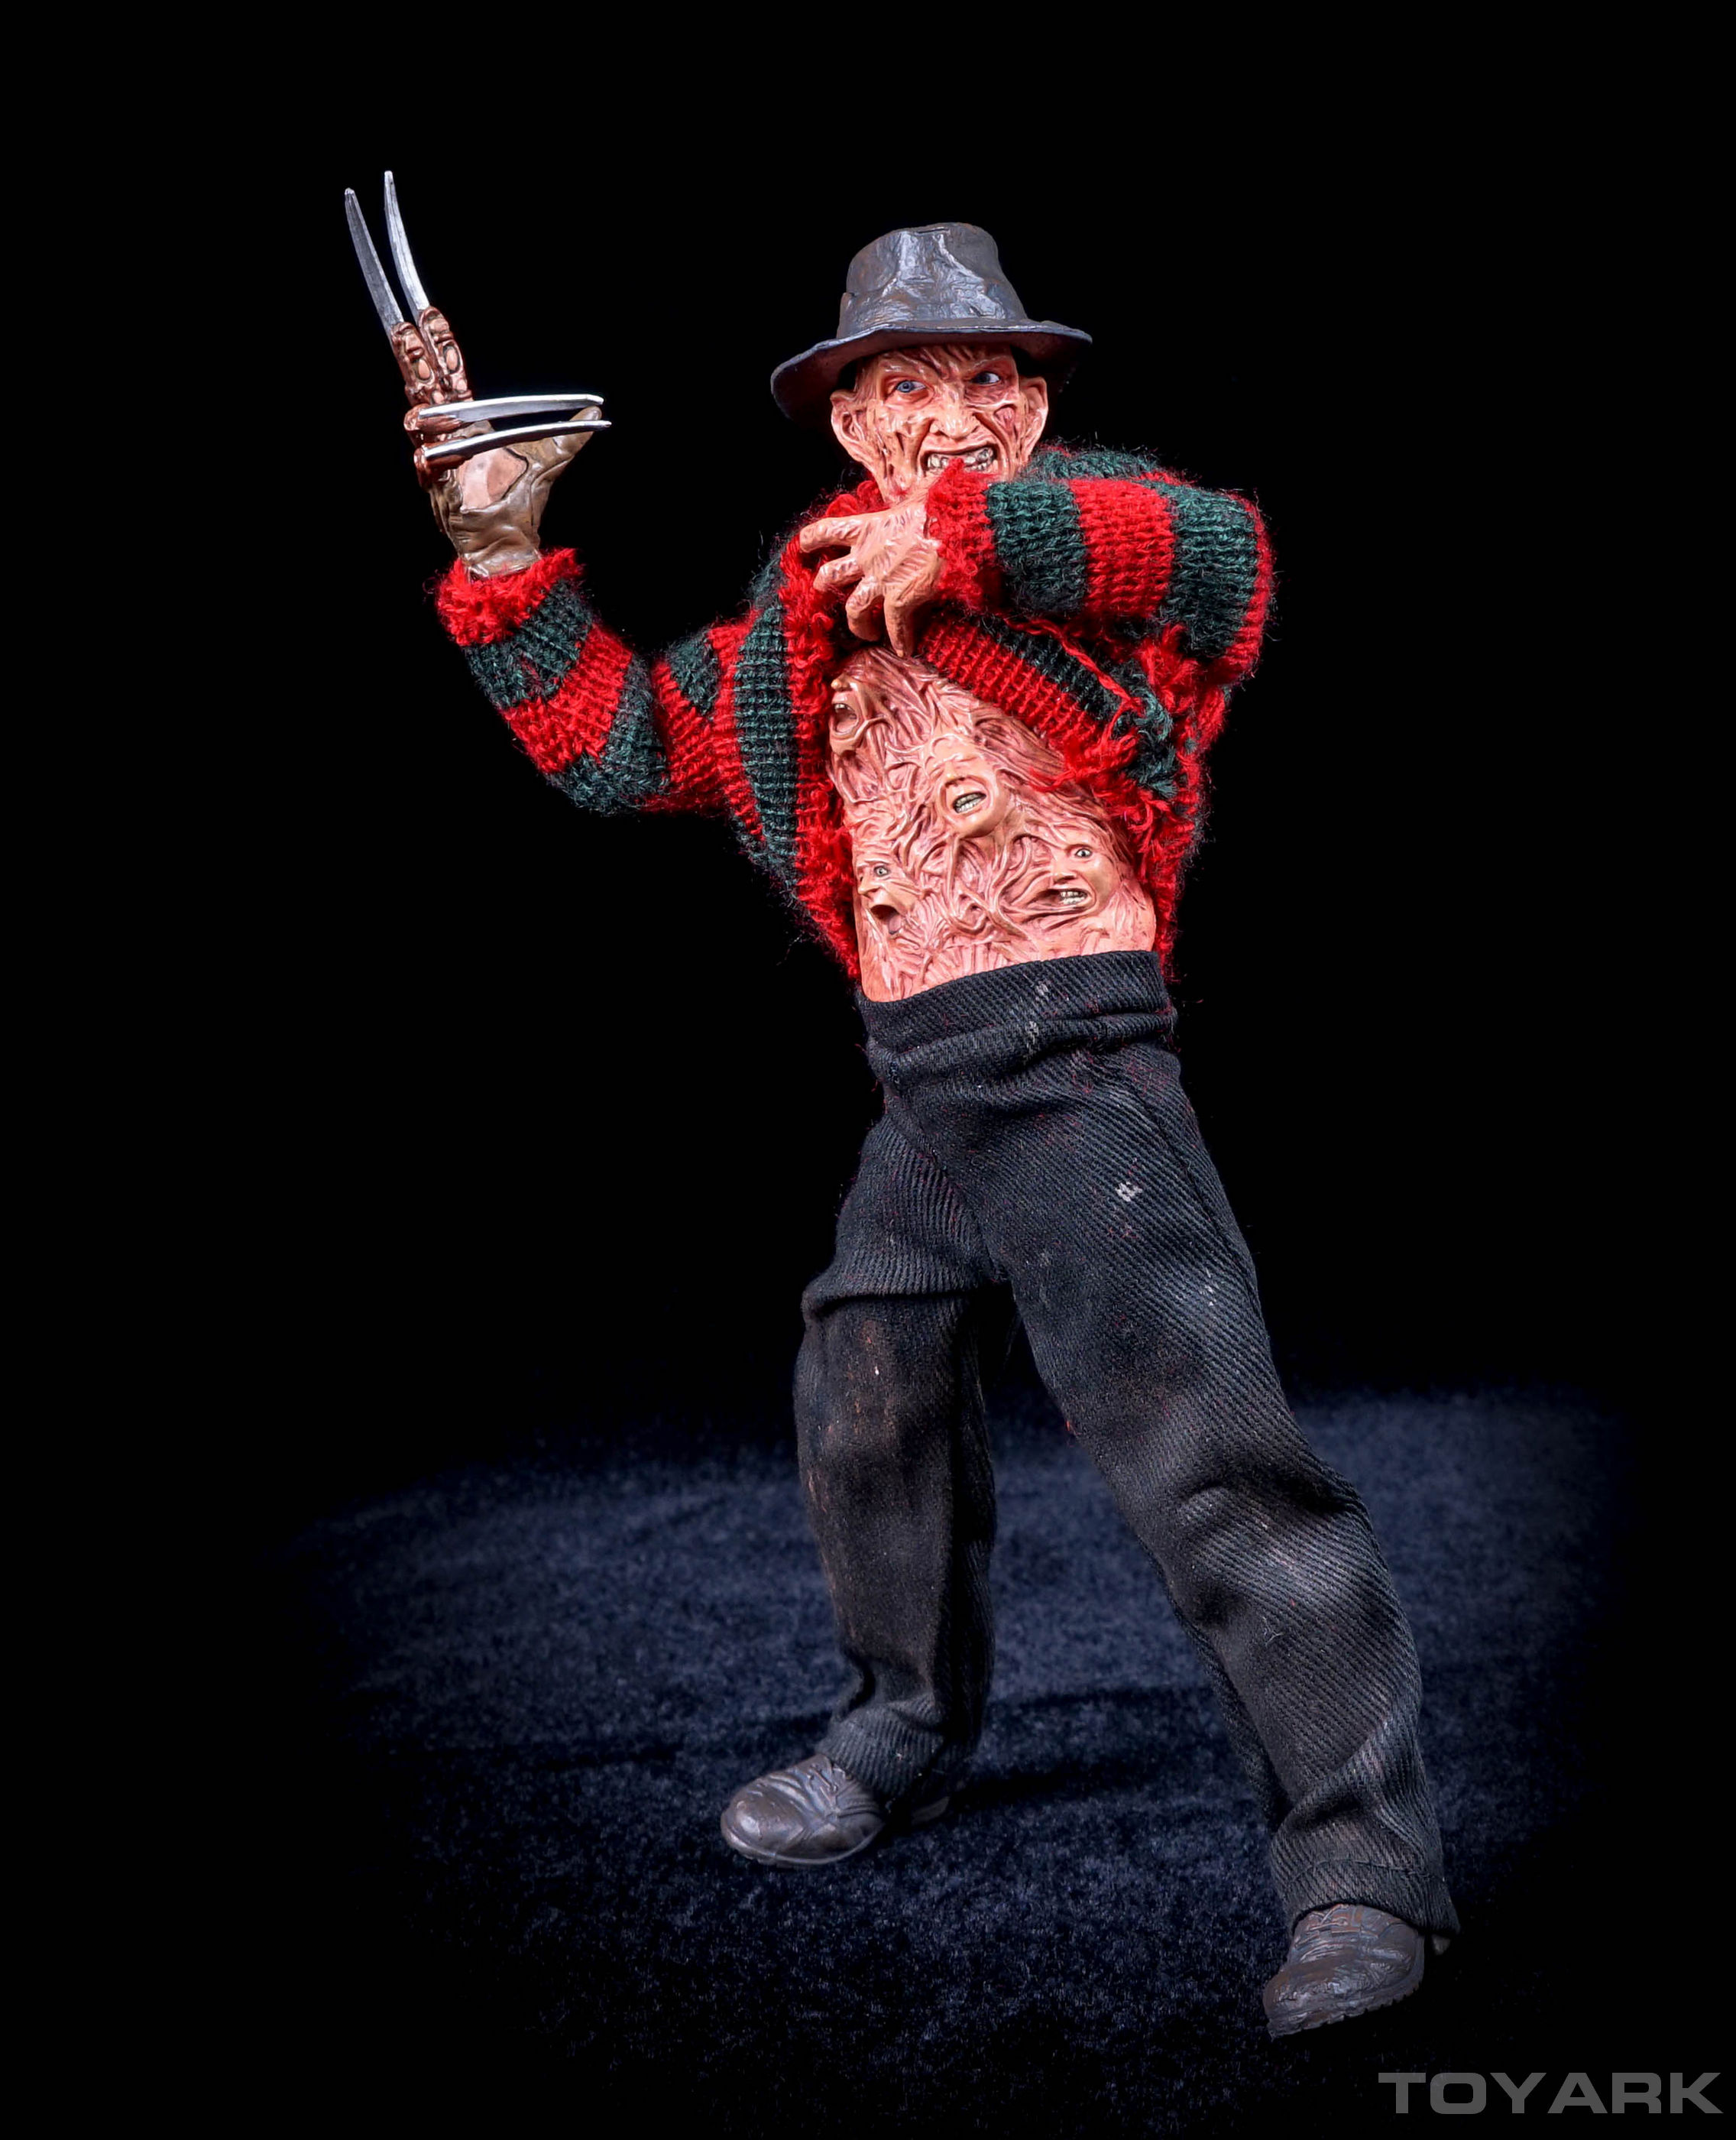 http://news.toyark.com/wp-content/uploads/sites/4/2015/10/NECA-Dream-Warriors-Retro-Freddy-035.jpg